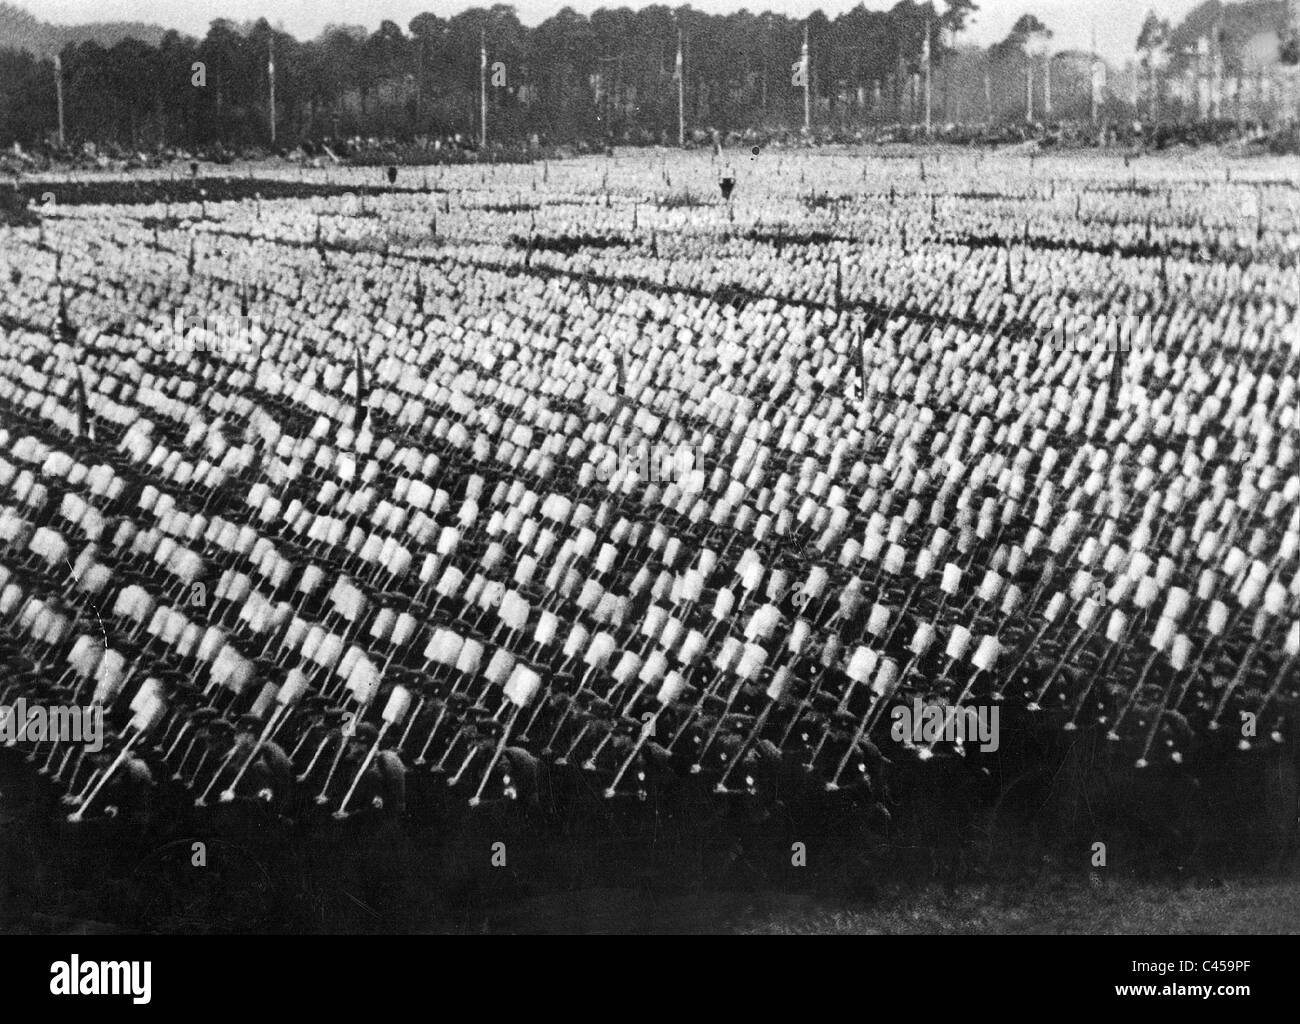 an analysis of the main theme in leni riefenstahls film triumph of the will Triumph of the will ( german : triumph des willens ) is a 1935 german propaganda film directed, produced, edited, and co-written by leni riefenstahl  it chronicles the 1934 nazi party congress in nuremberg , which was attended by more than 700,000 nazi supporters.